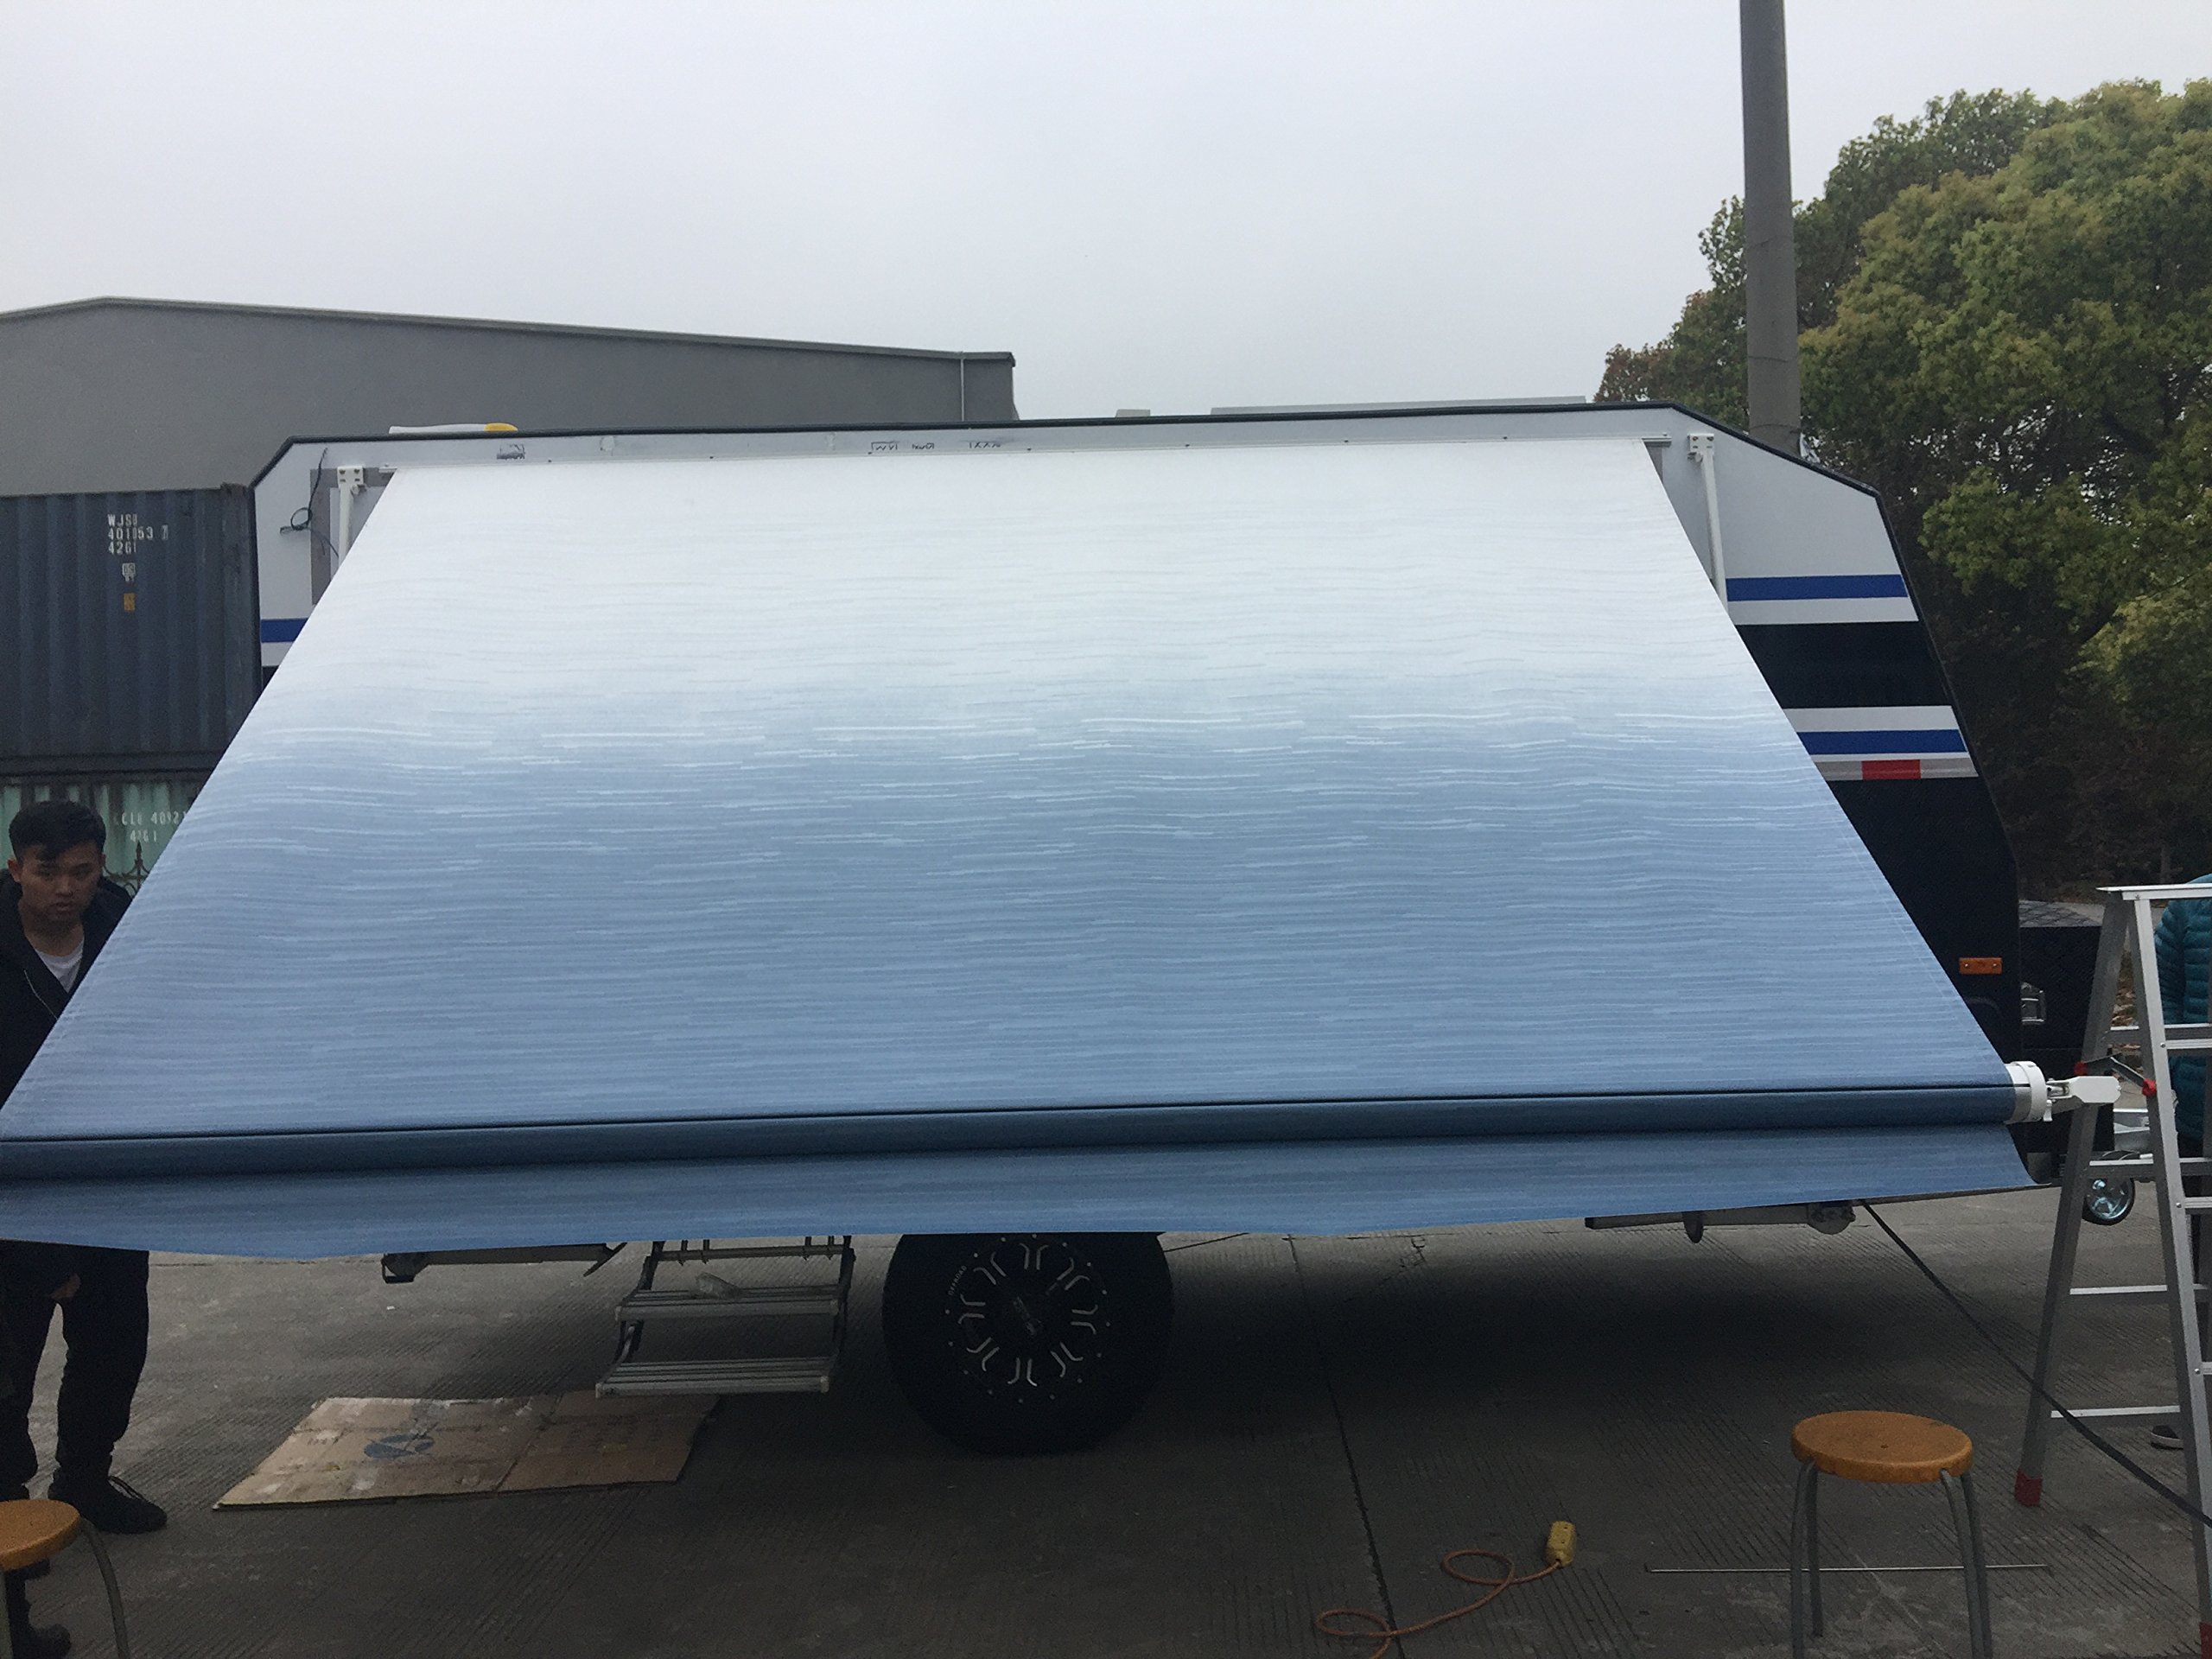 Awning Measured from Center Arm to Center Arm Awnlux 14 Feet 2 Inch Trailer Awning Fabric for 15 Feet Awning